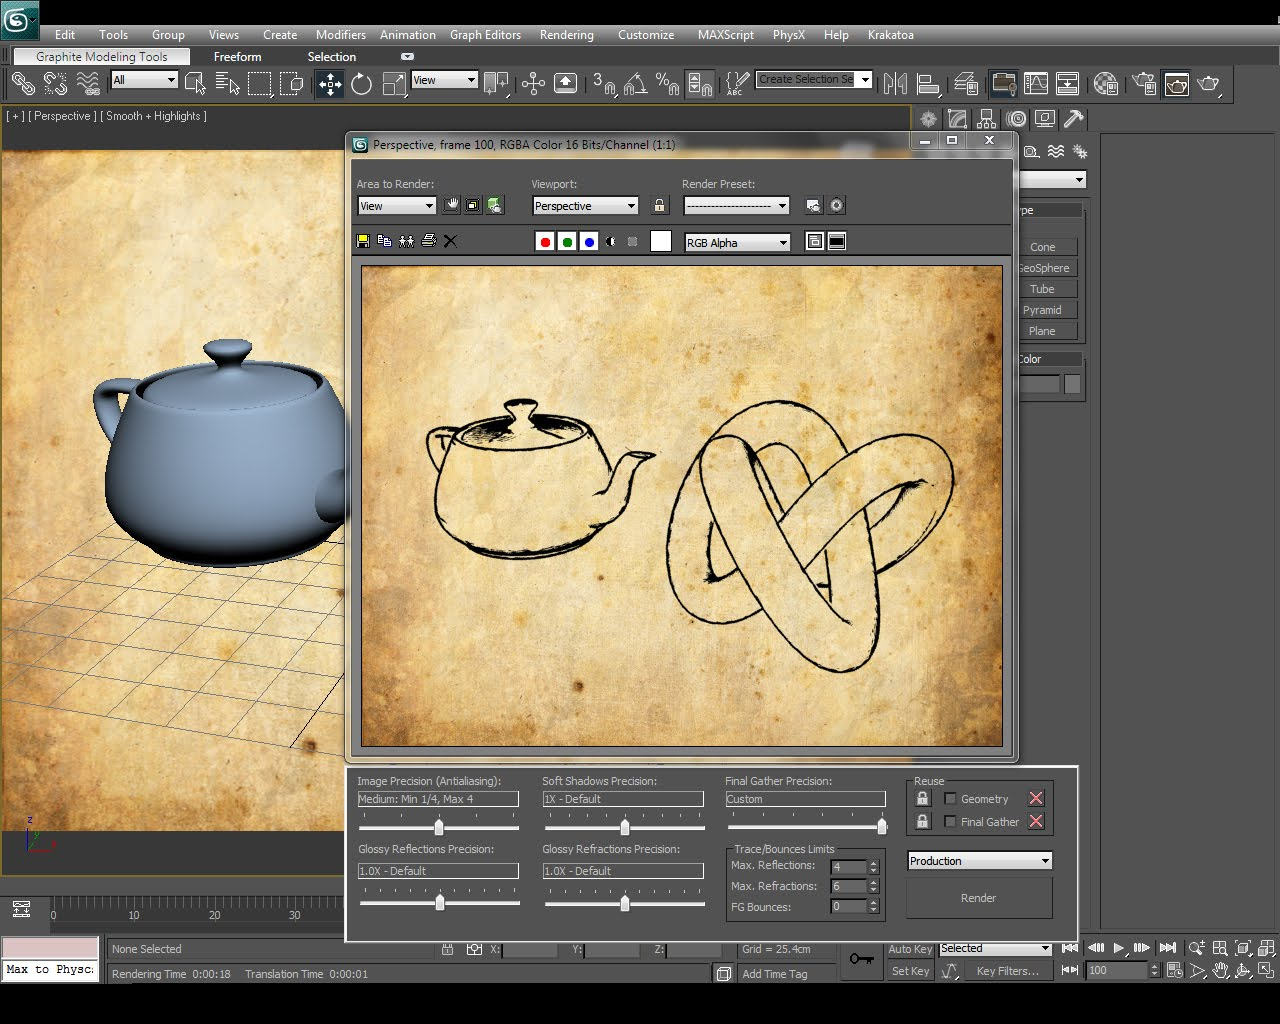 Line Drawing Render 3ds Max : Ds max materials creating sketch effects in tutorial